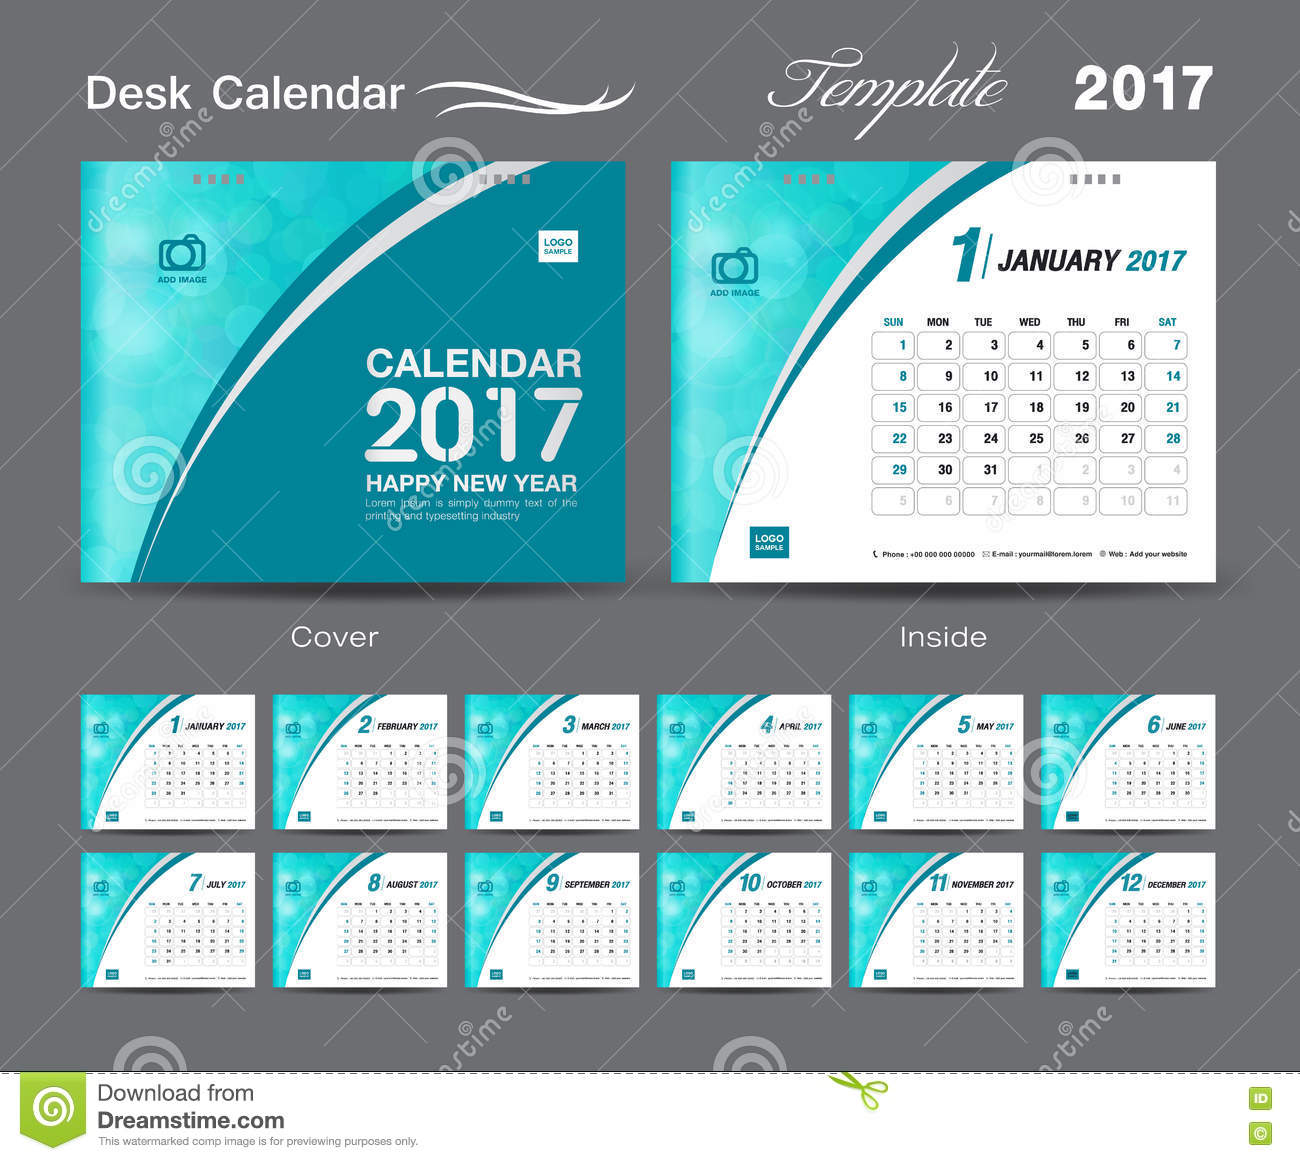 Calendar Cover : Desk calendar template design set cover